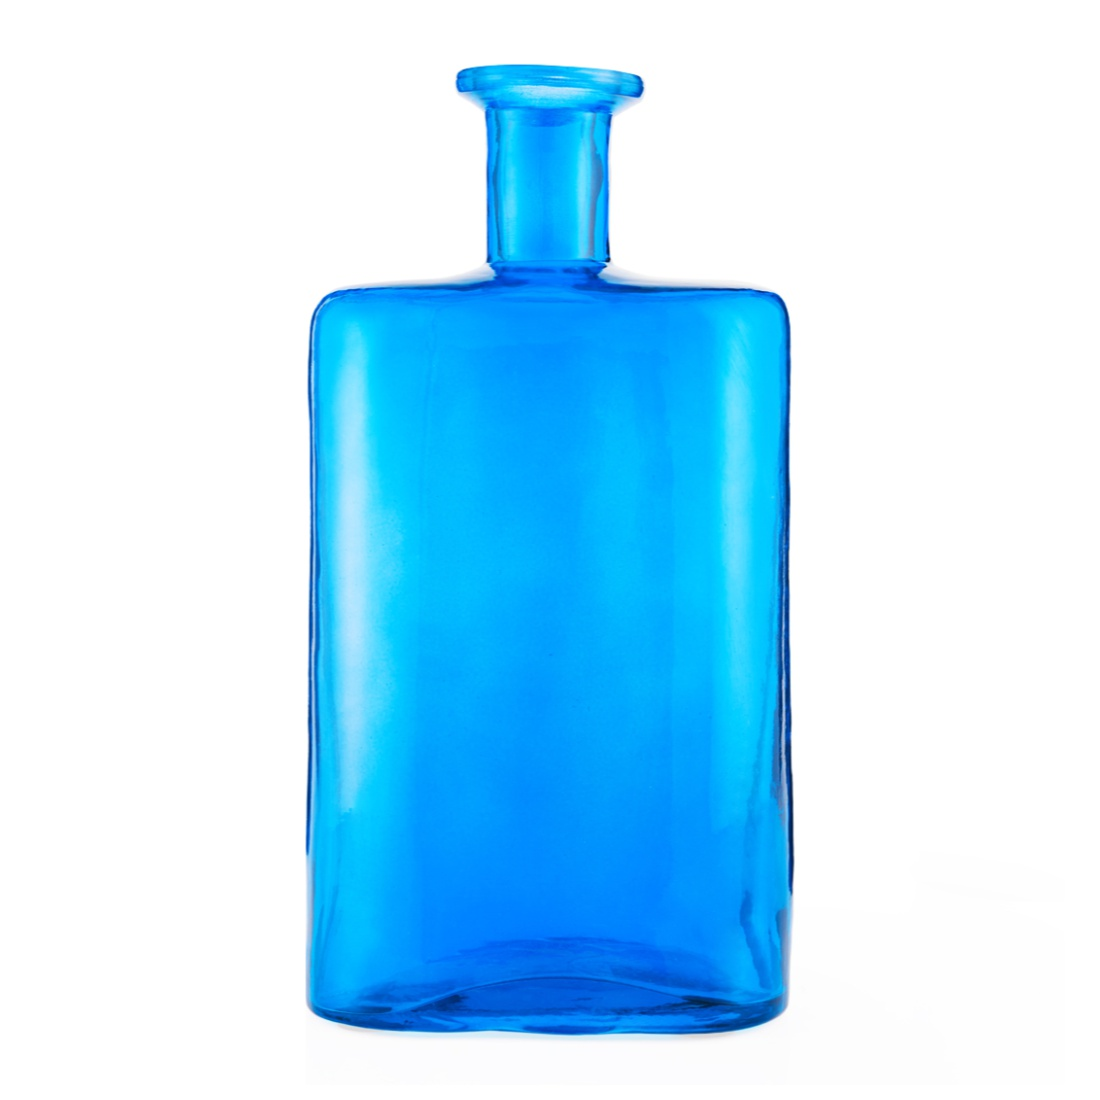 Ambrosia Square Bottle Vase Teal Glass Vases in Teal Colour by Living Essence